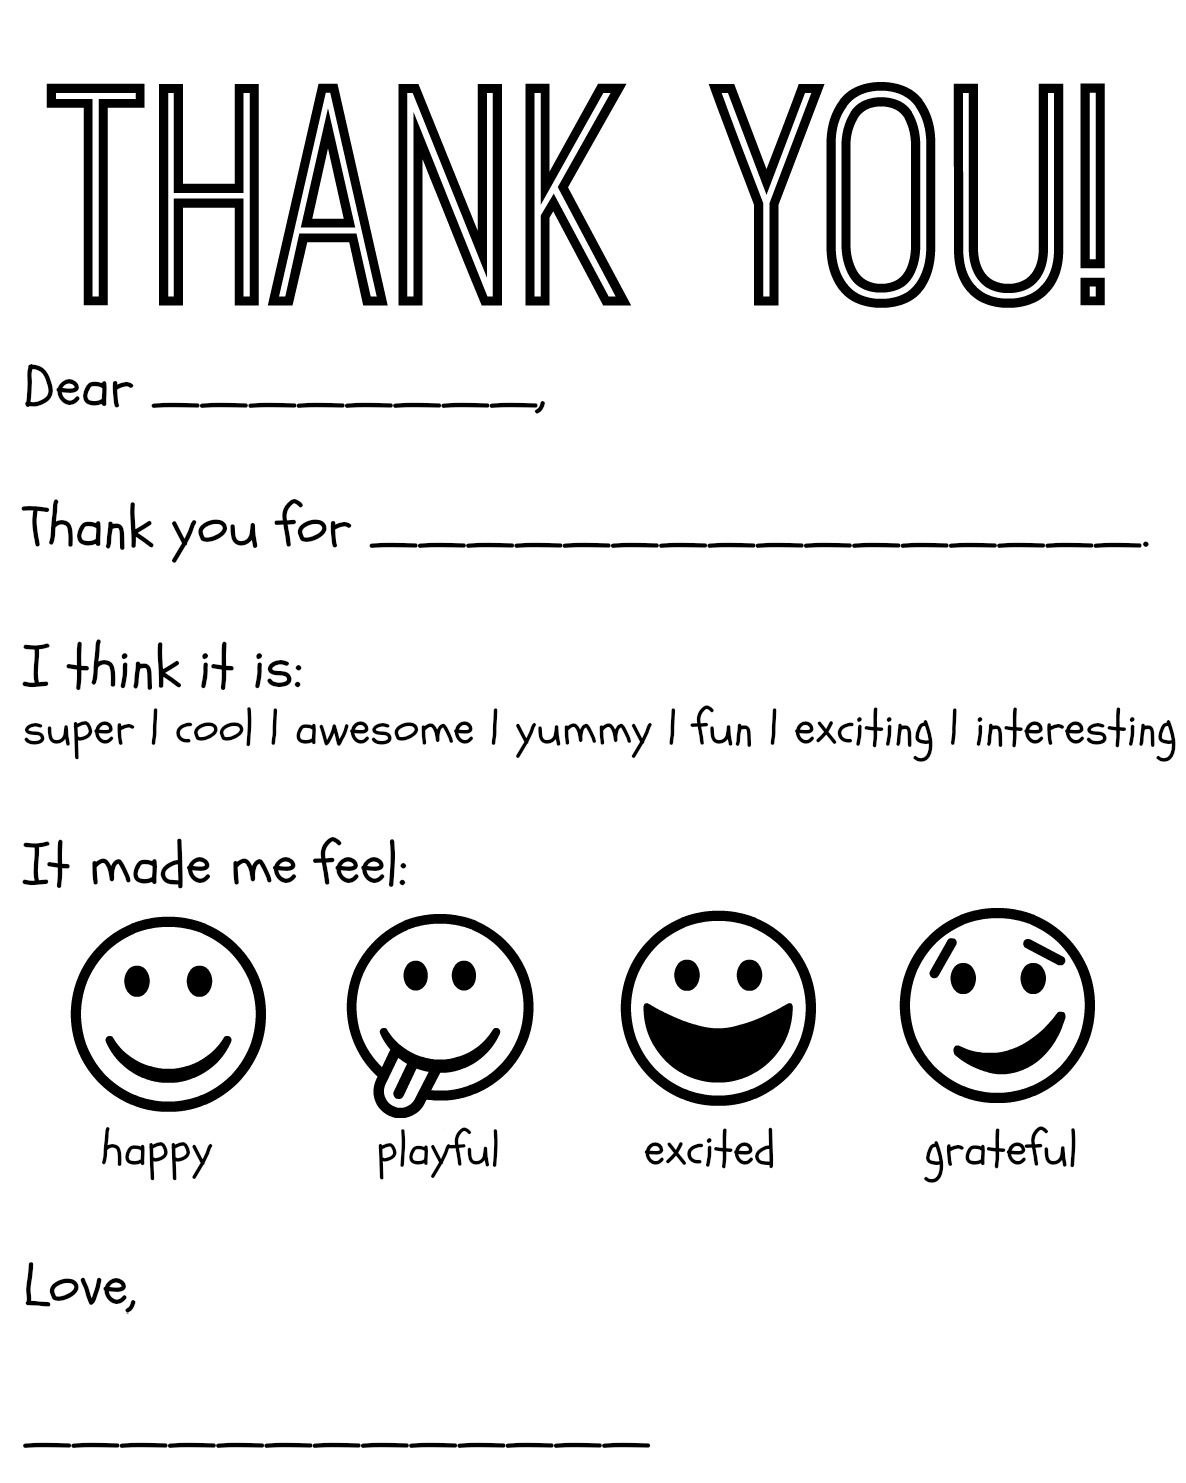 Free Printable Kids Thank You Cards To Color | Thank You Card - Free Printable Thank You Cards Black And White